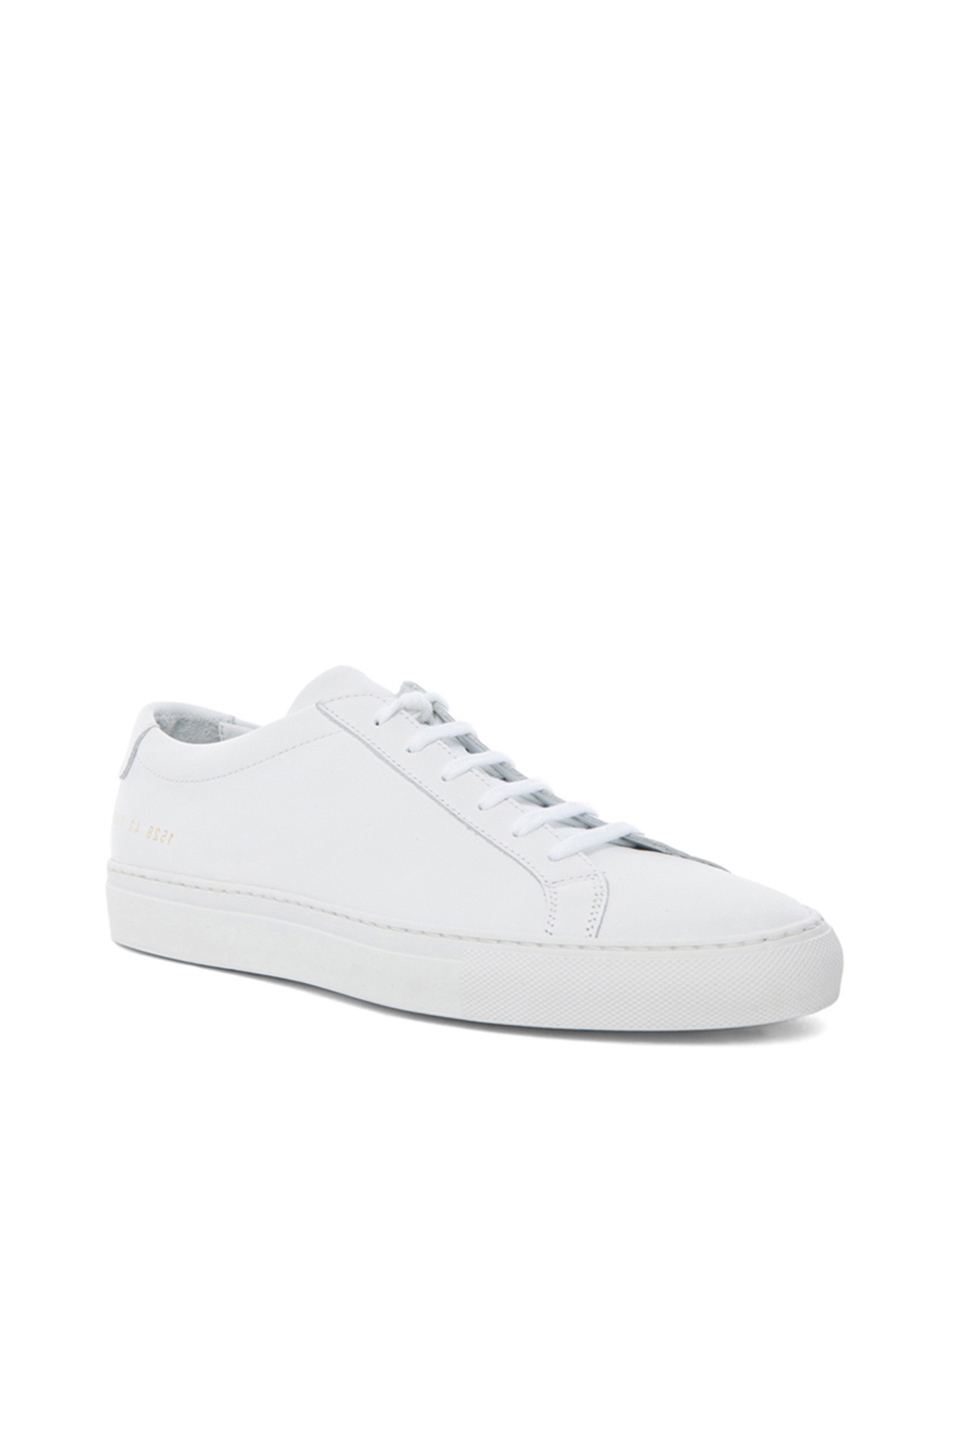 common projects original achilles leather low tops in white lyst. Black Bedroom Furniture Sets. Home Design Ideas